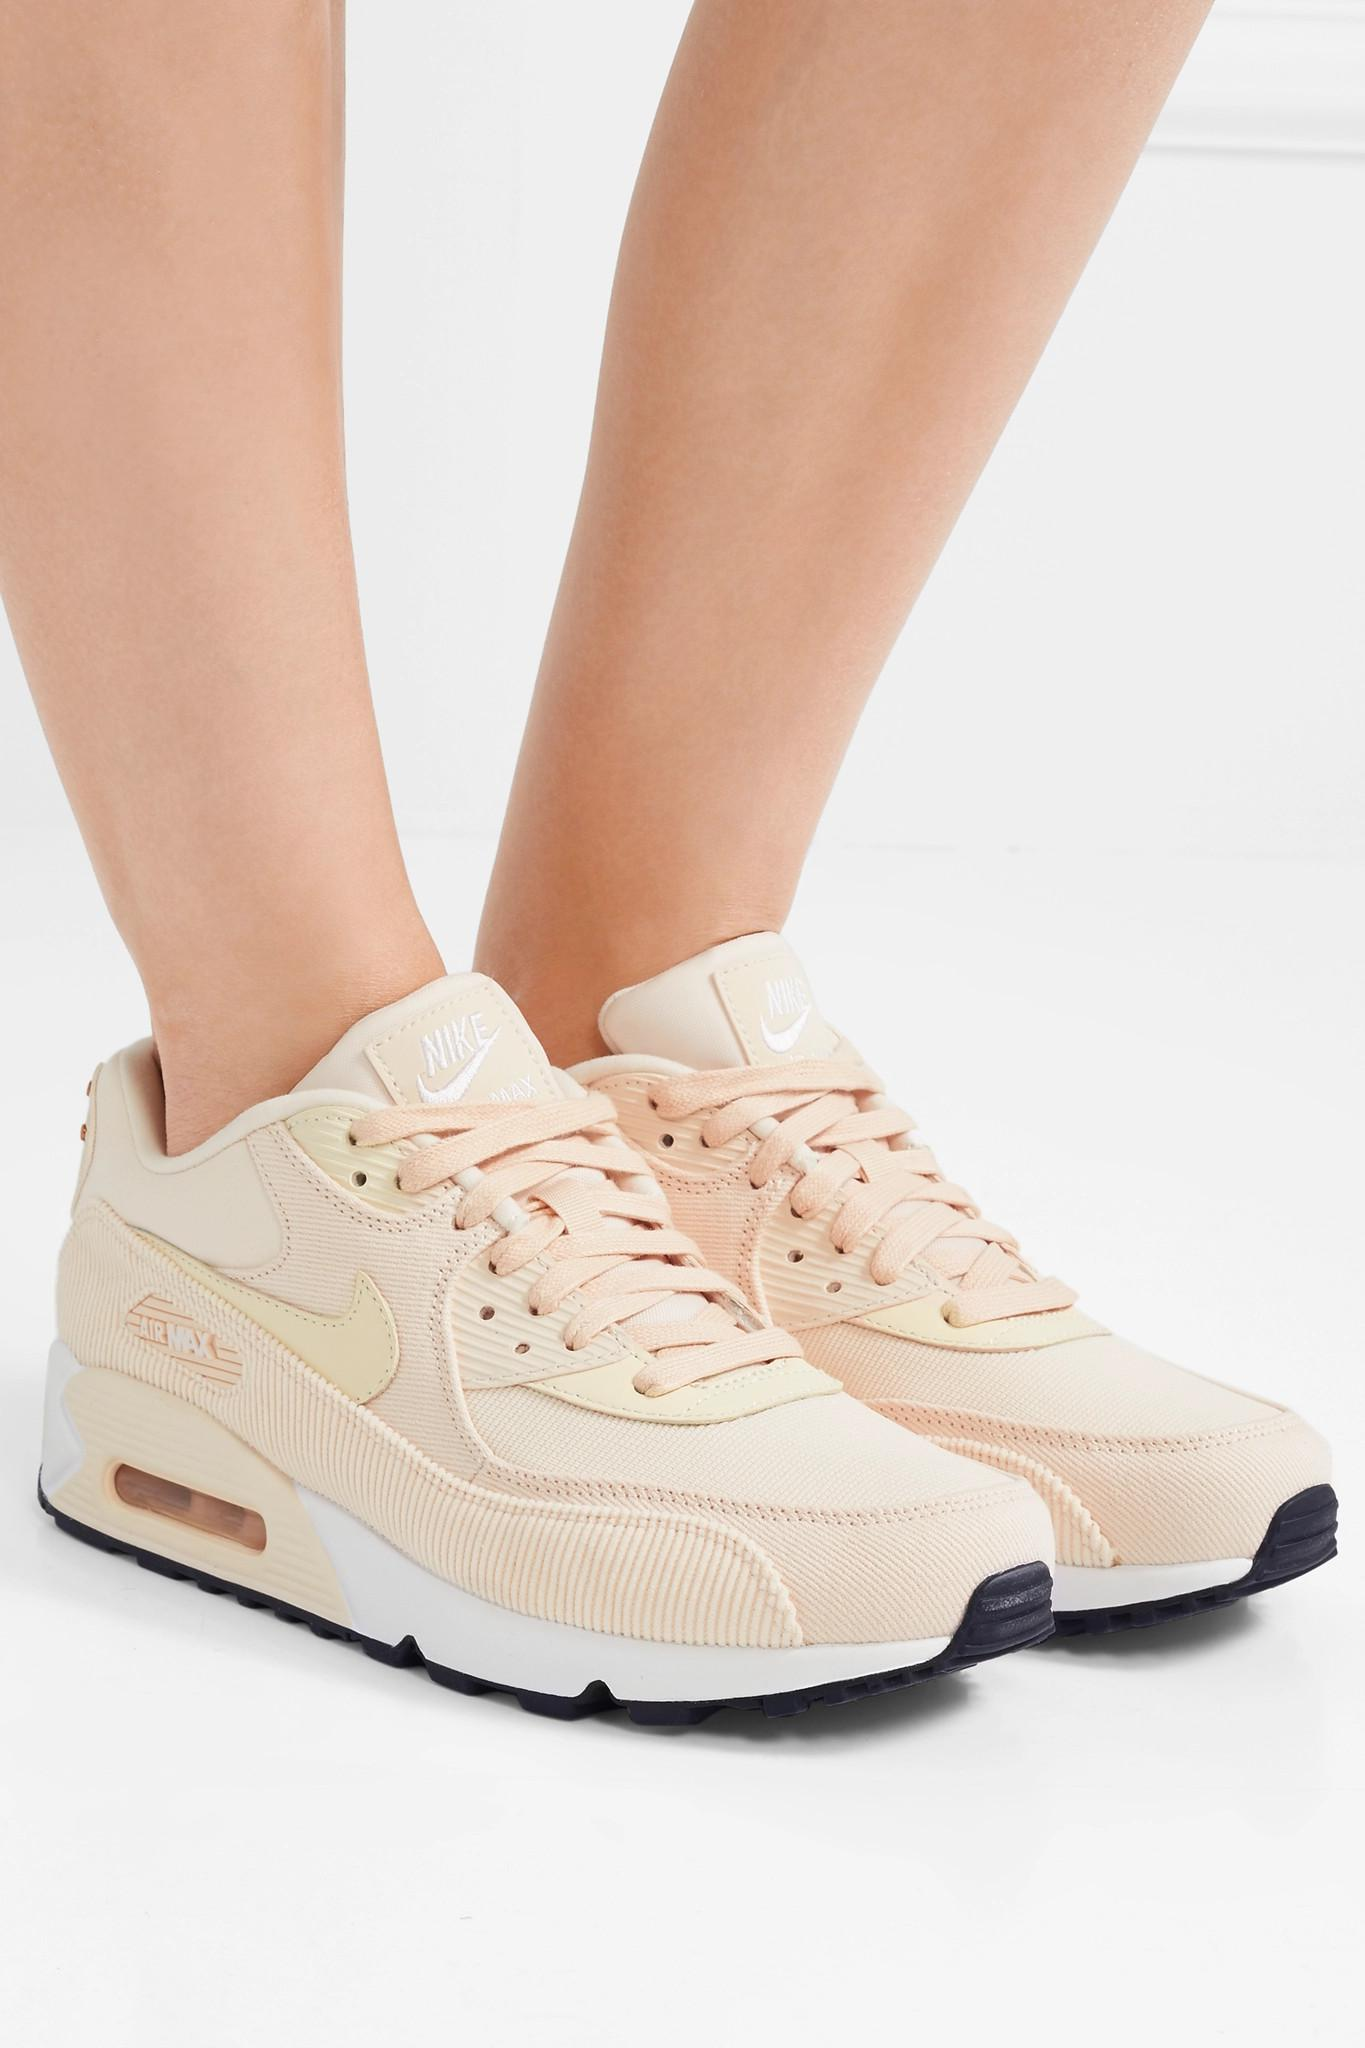 Nike Air Max 90 Leather, Corduroy And Mesh Sneakers - Lyst